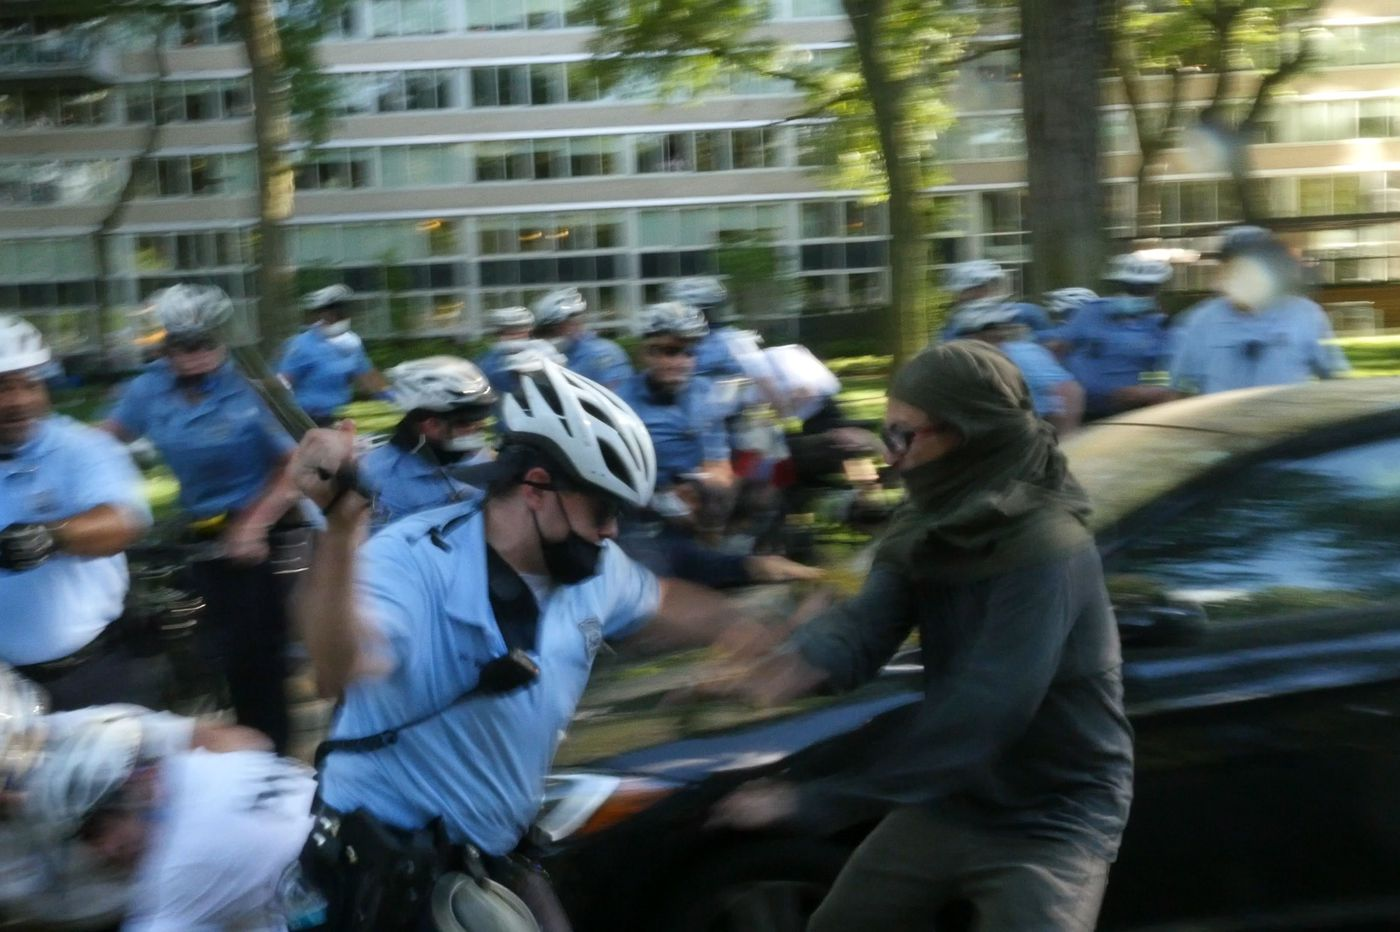 'Police just went nuts': Charges dropped after video of police beating protesting student | Morning Newsletter